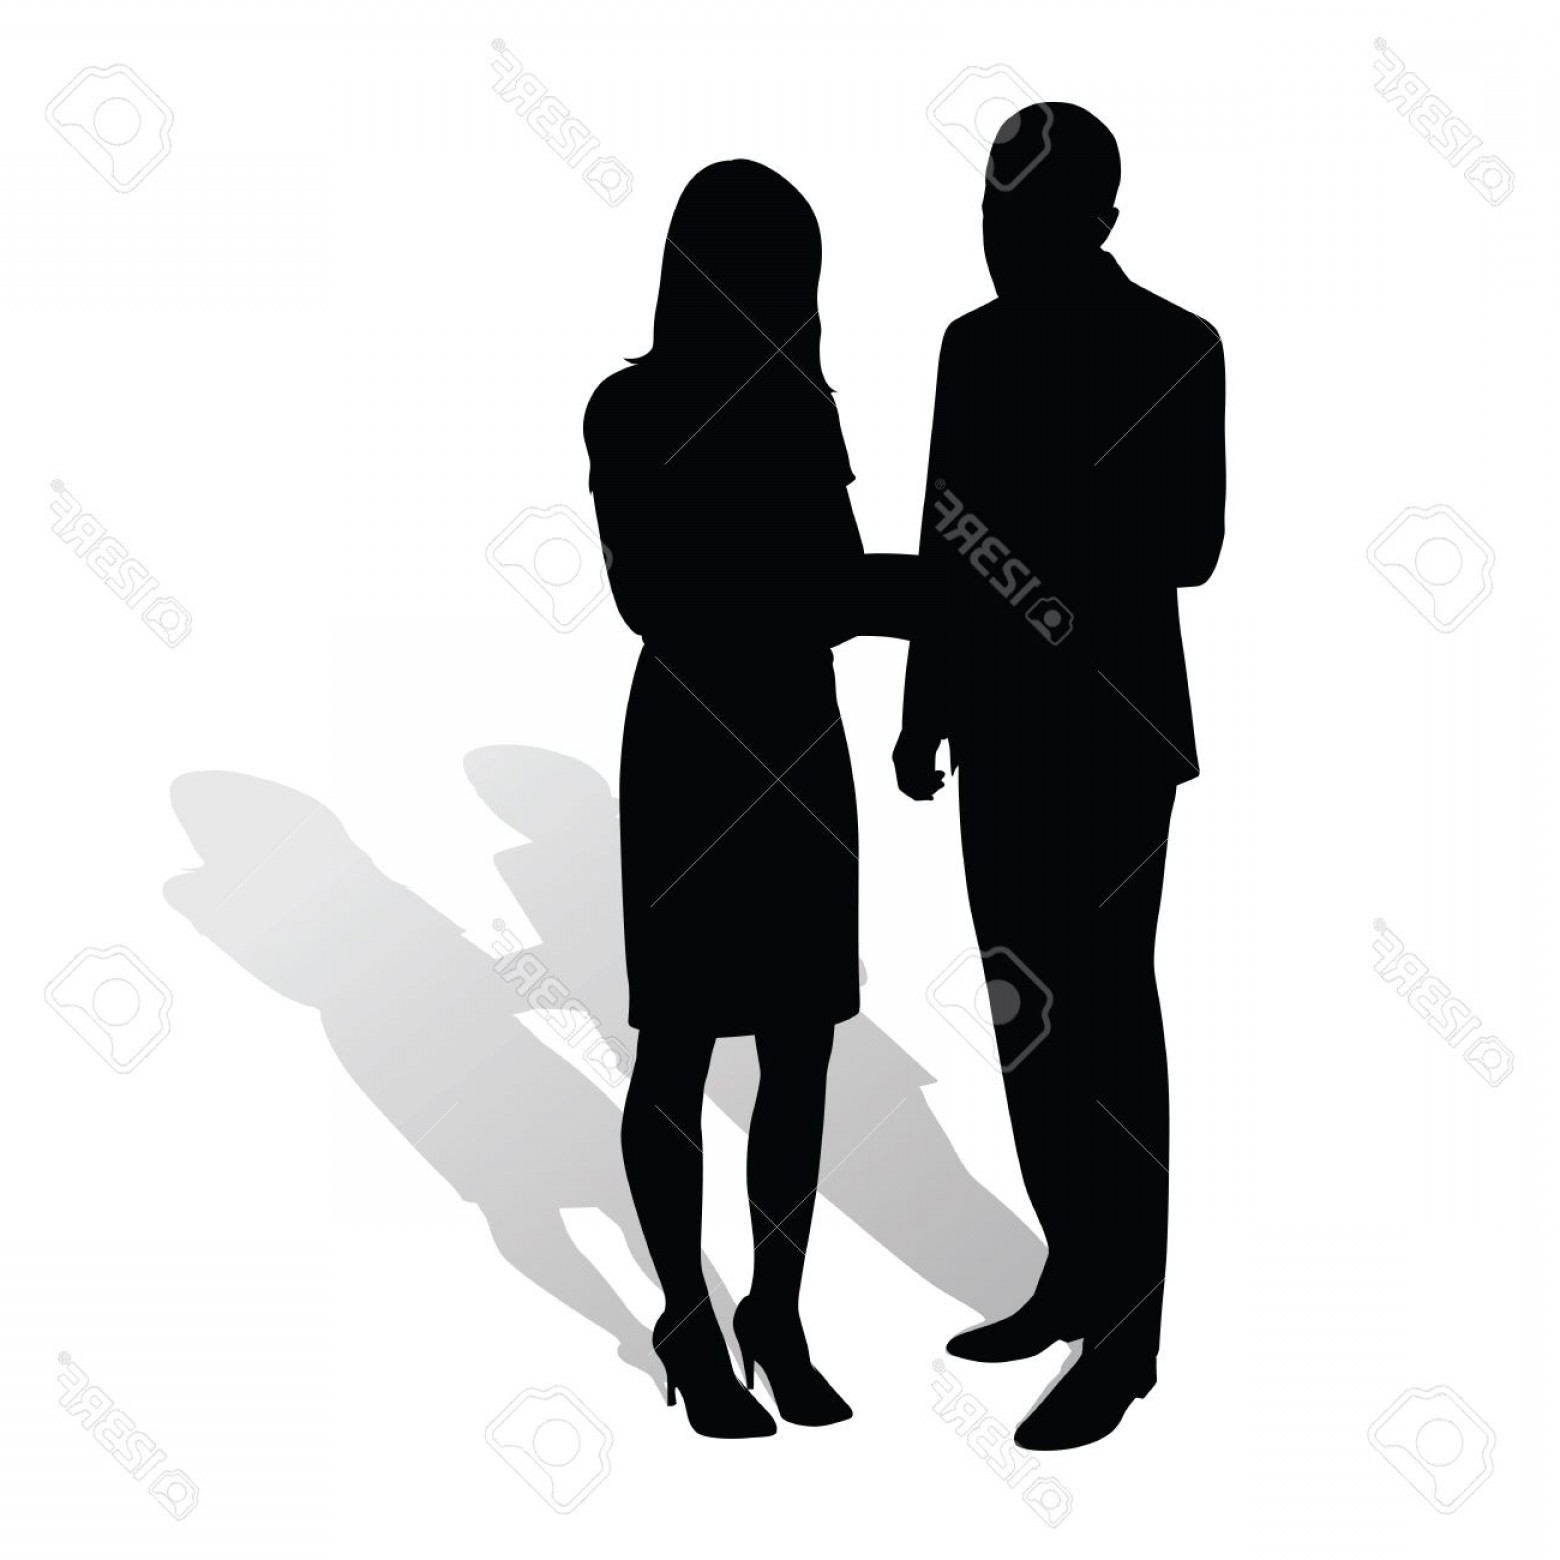 Silhouette Hee High Vector Lsitleetios: Photostock Vector Business People Man Talking To Woman Vector Silhouettes With Shadow Businessmen In Formal Wear Man I